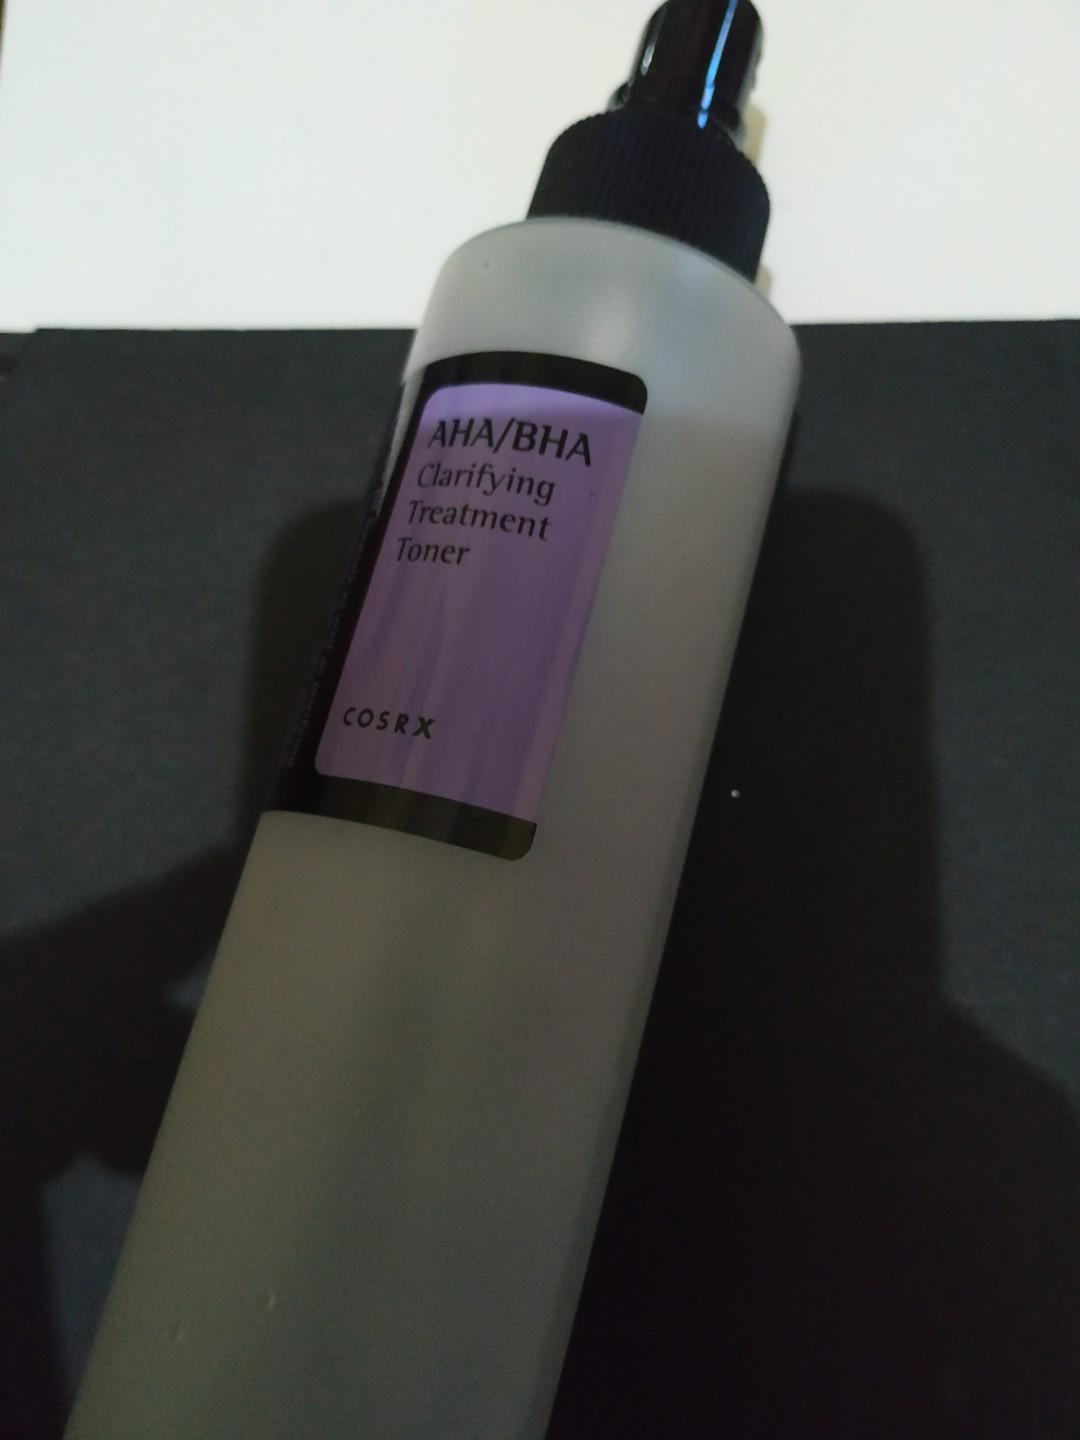 Cosrx AHA/BHA Clarifying Treatment Toner